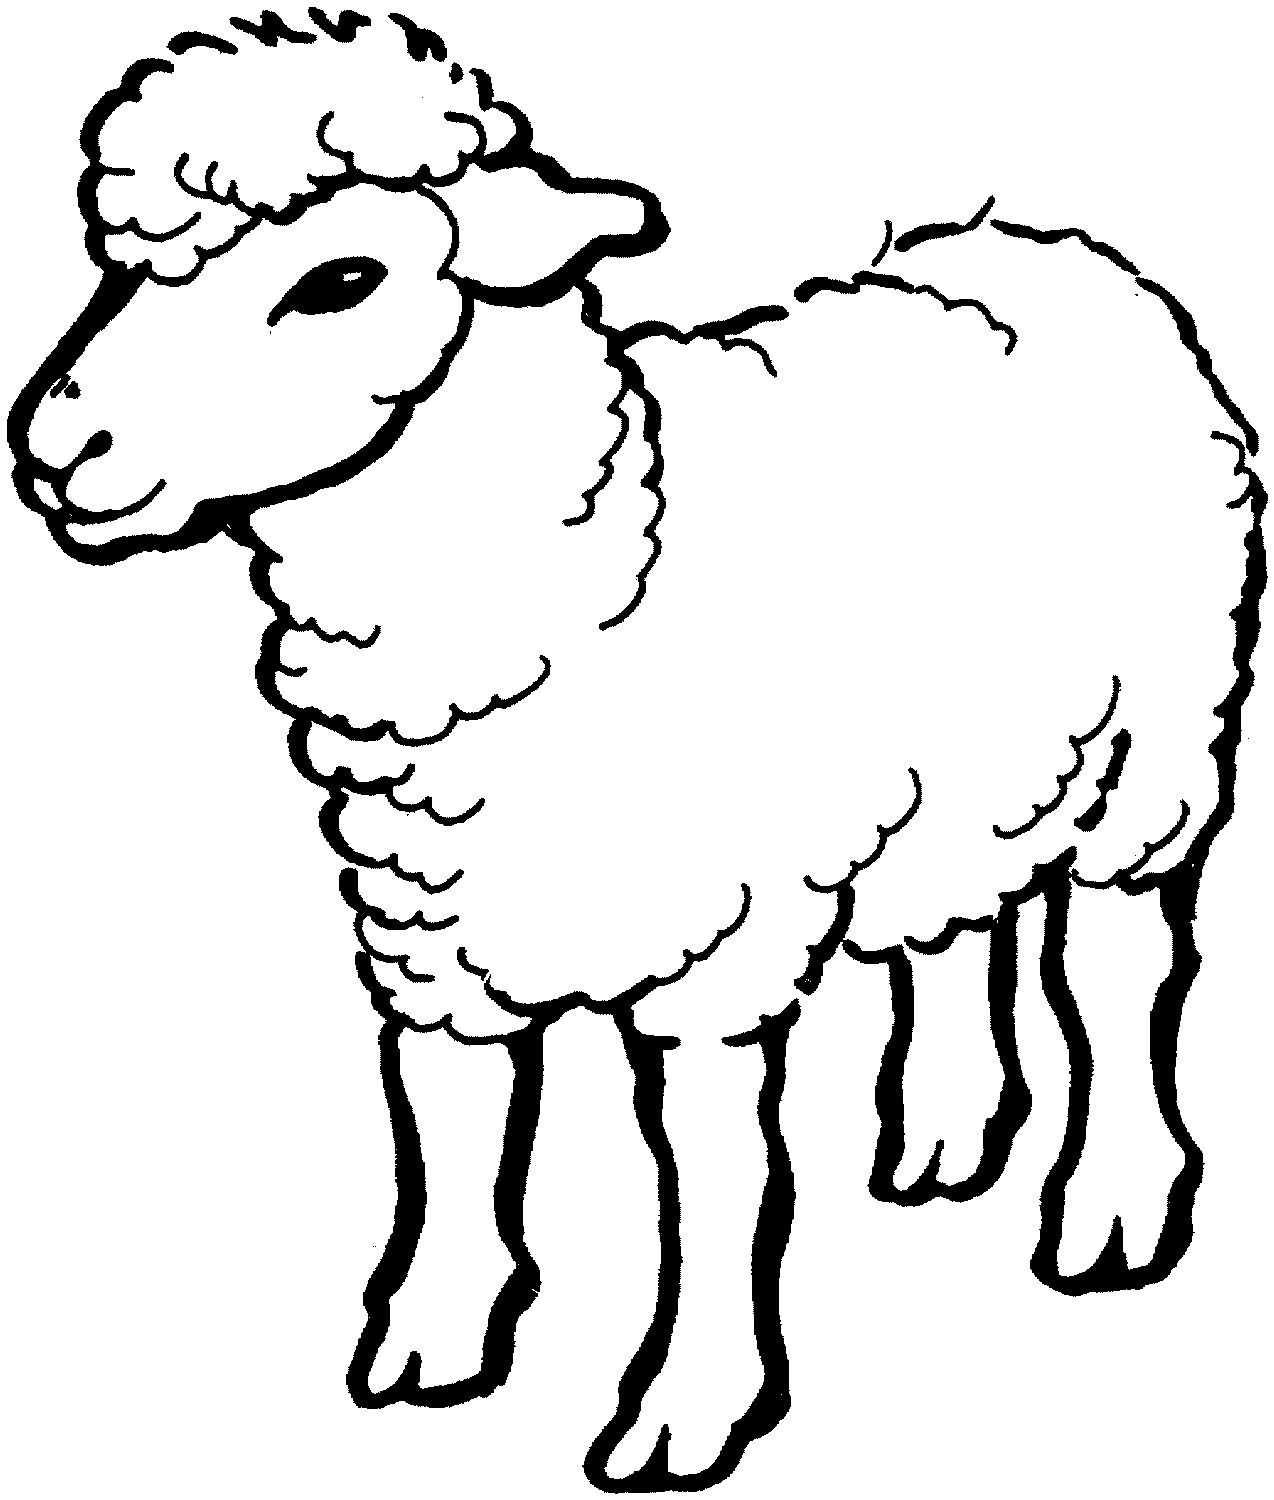 sheep coloring page - sheep coloring pages